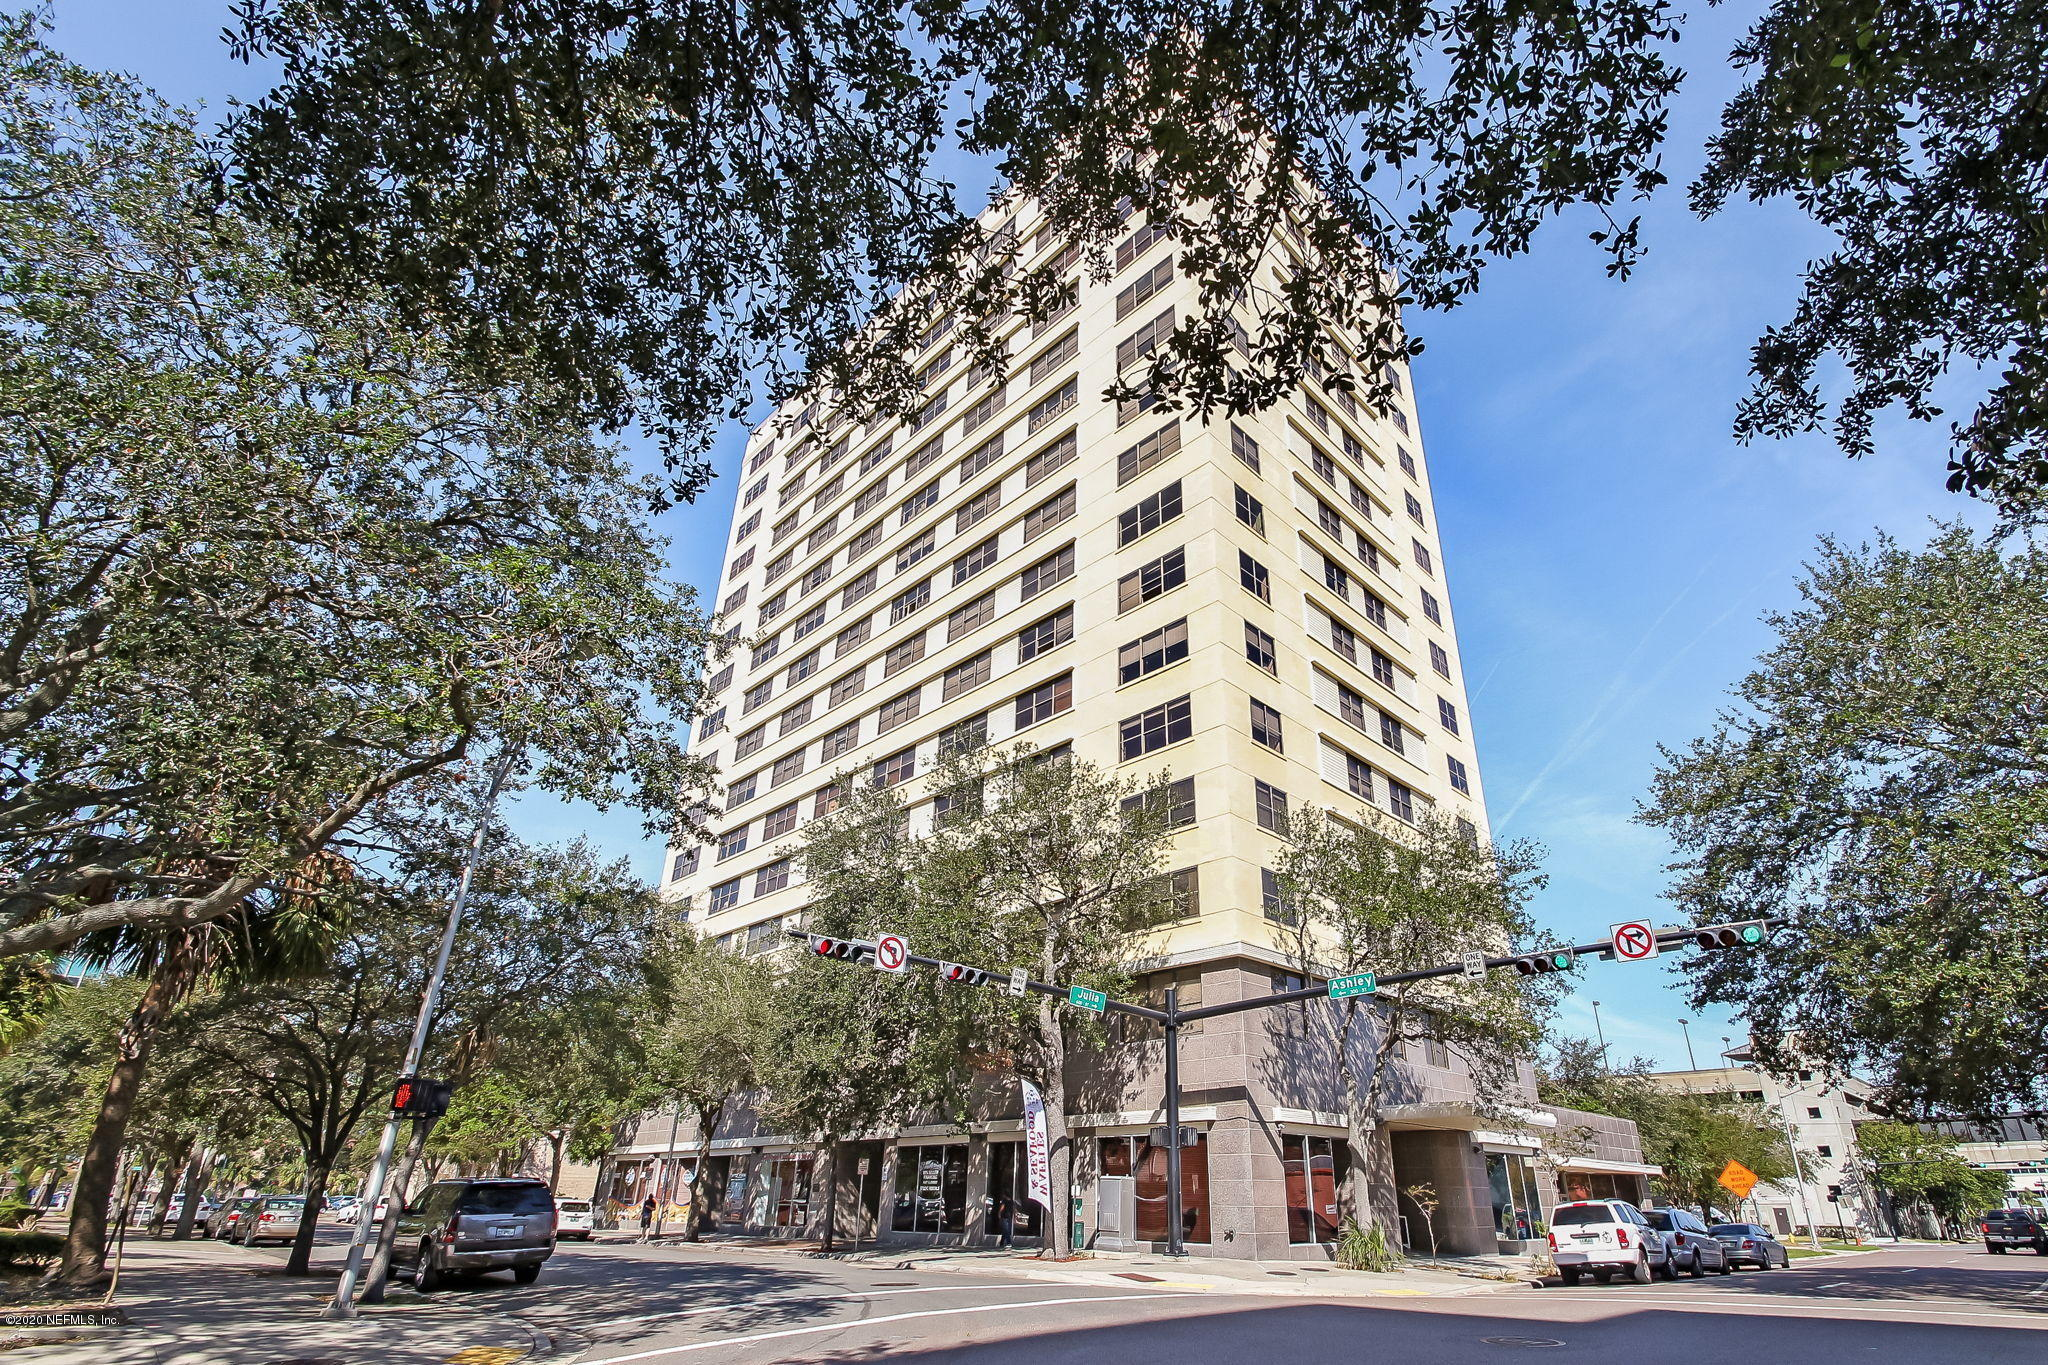 311 ASHLEY, JACKSONVILLE, FLORIDA 32202, 1 Bedroom Bedrooms, ,1 BathroomBathrooms,Residential,For sale,ASHLEY,1046841